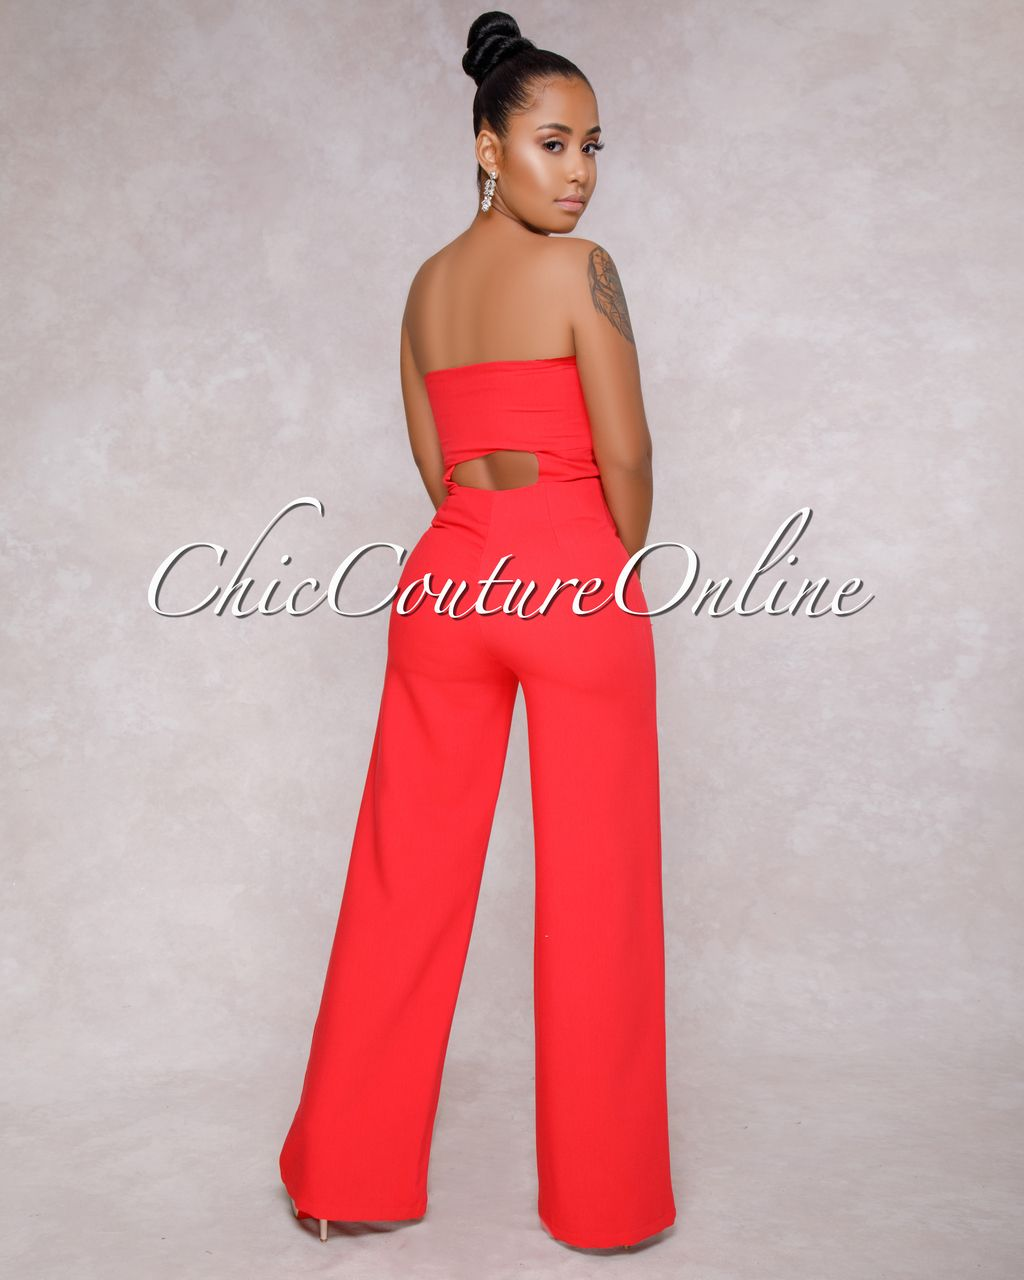 cd76554f8ca Chic Couture Online - Brinley Strapless Red Knot Front Jumpsuit